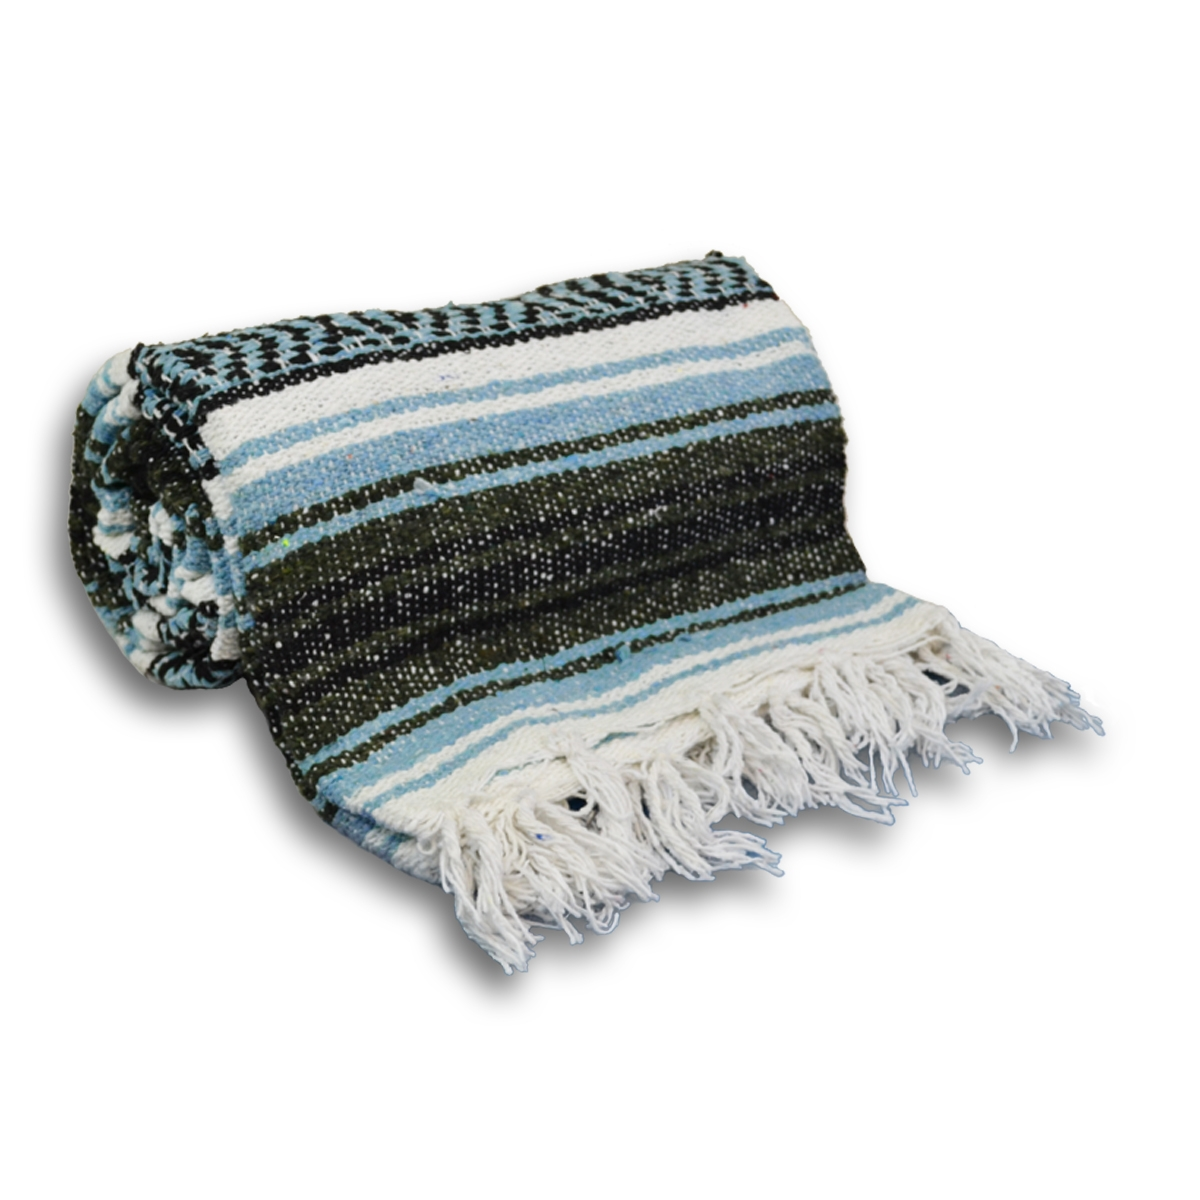 5 Traditional Mexican Yoga Blankets For 55 Yoga Direct